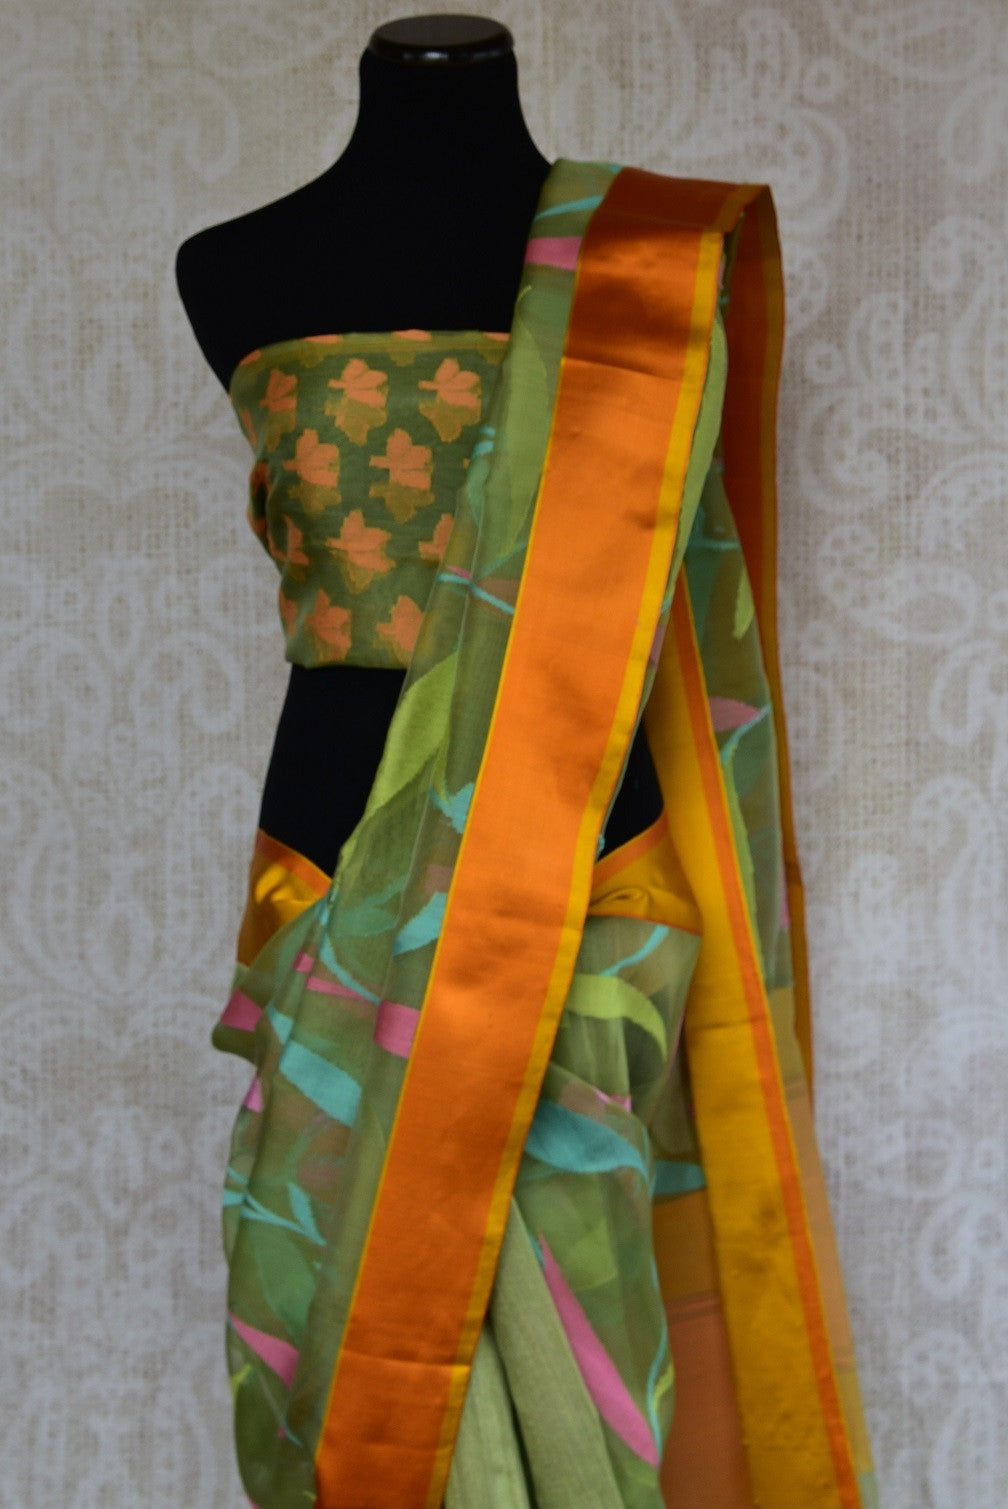 90C107 Half matka, half organza, kota satin Banarasi saree. The green floral saree with orange-gold border, available at our Indian clothing store online in USA, is ideal for ethnic festivities